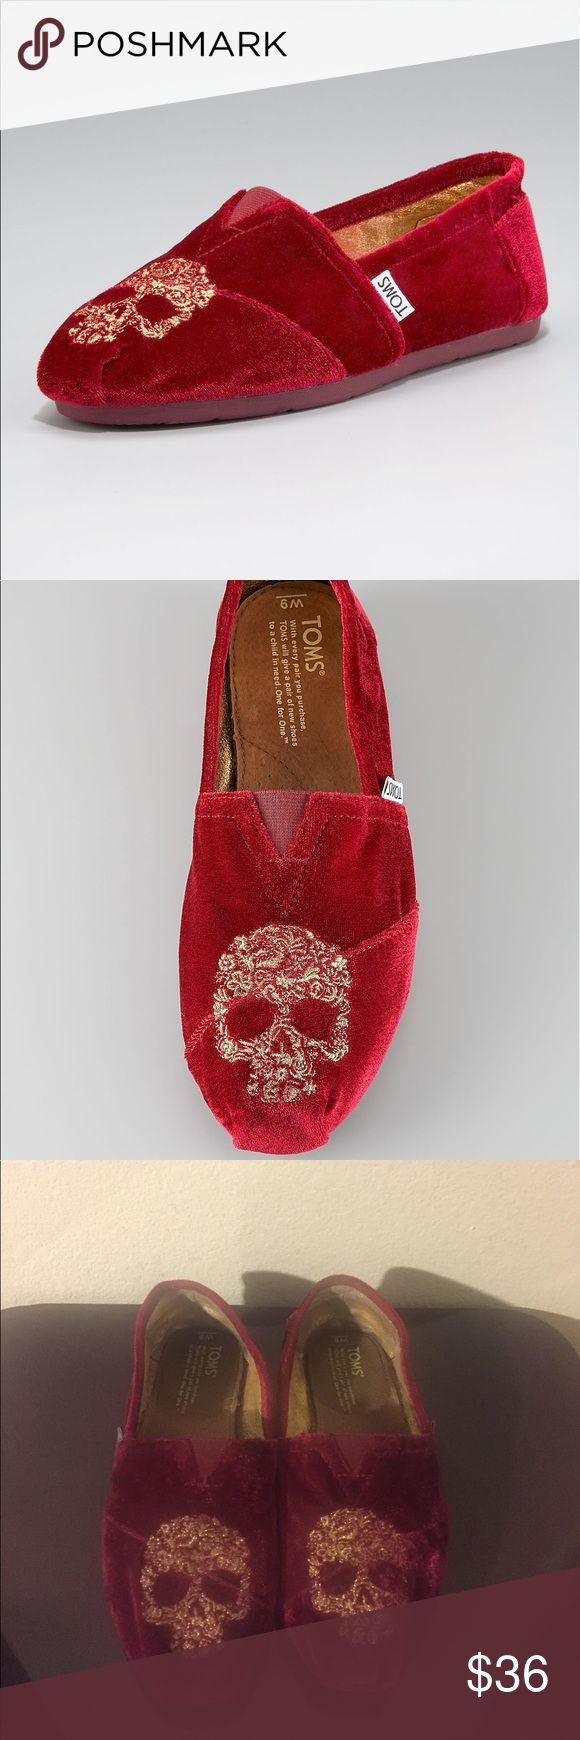 Neiman Marcus Special Edition Velvet Toms Used (about 8-9 times) Special Edition Neiman Marcus velvet toms wth gold skull embroidered detail TOMS Shoes